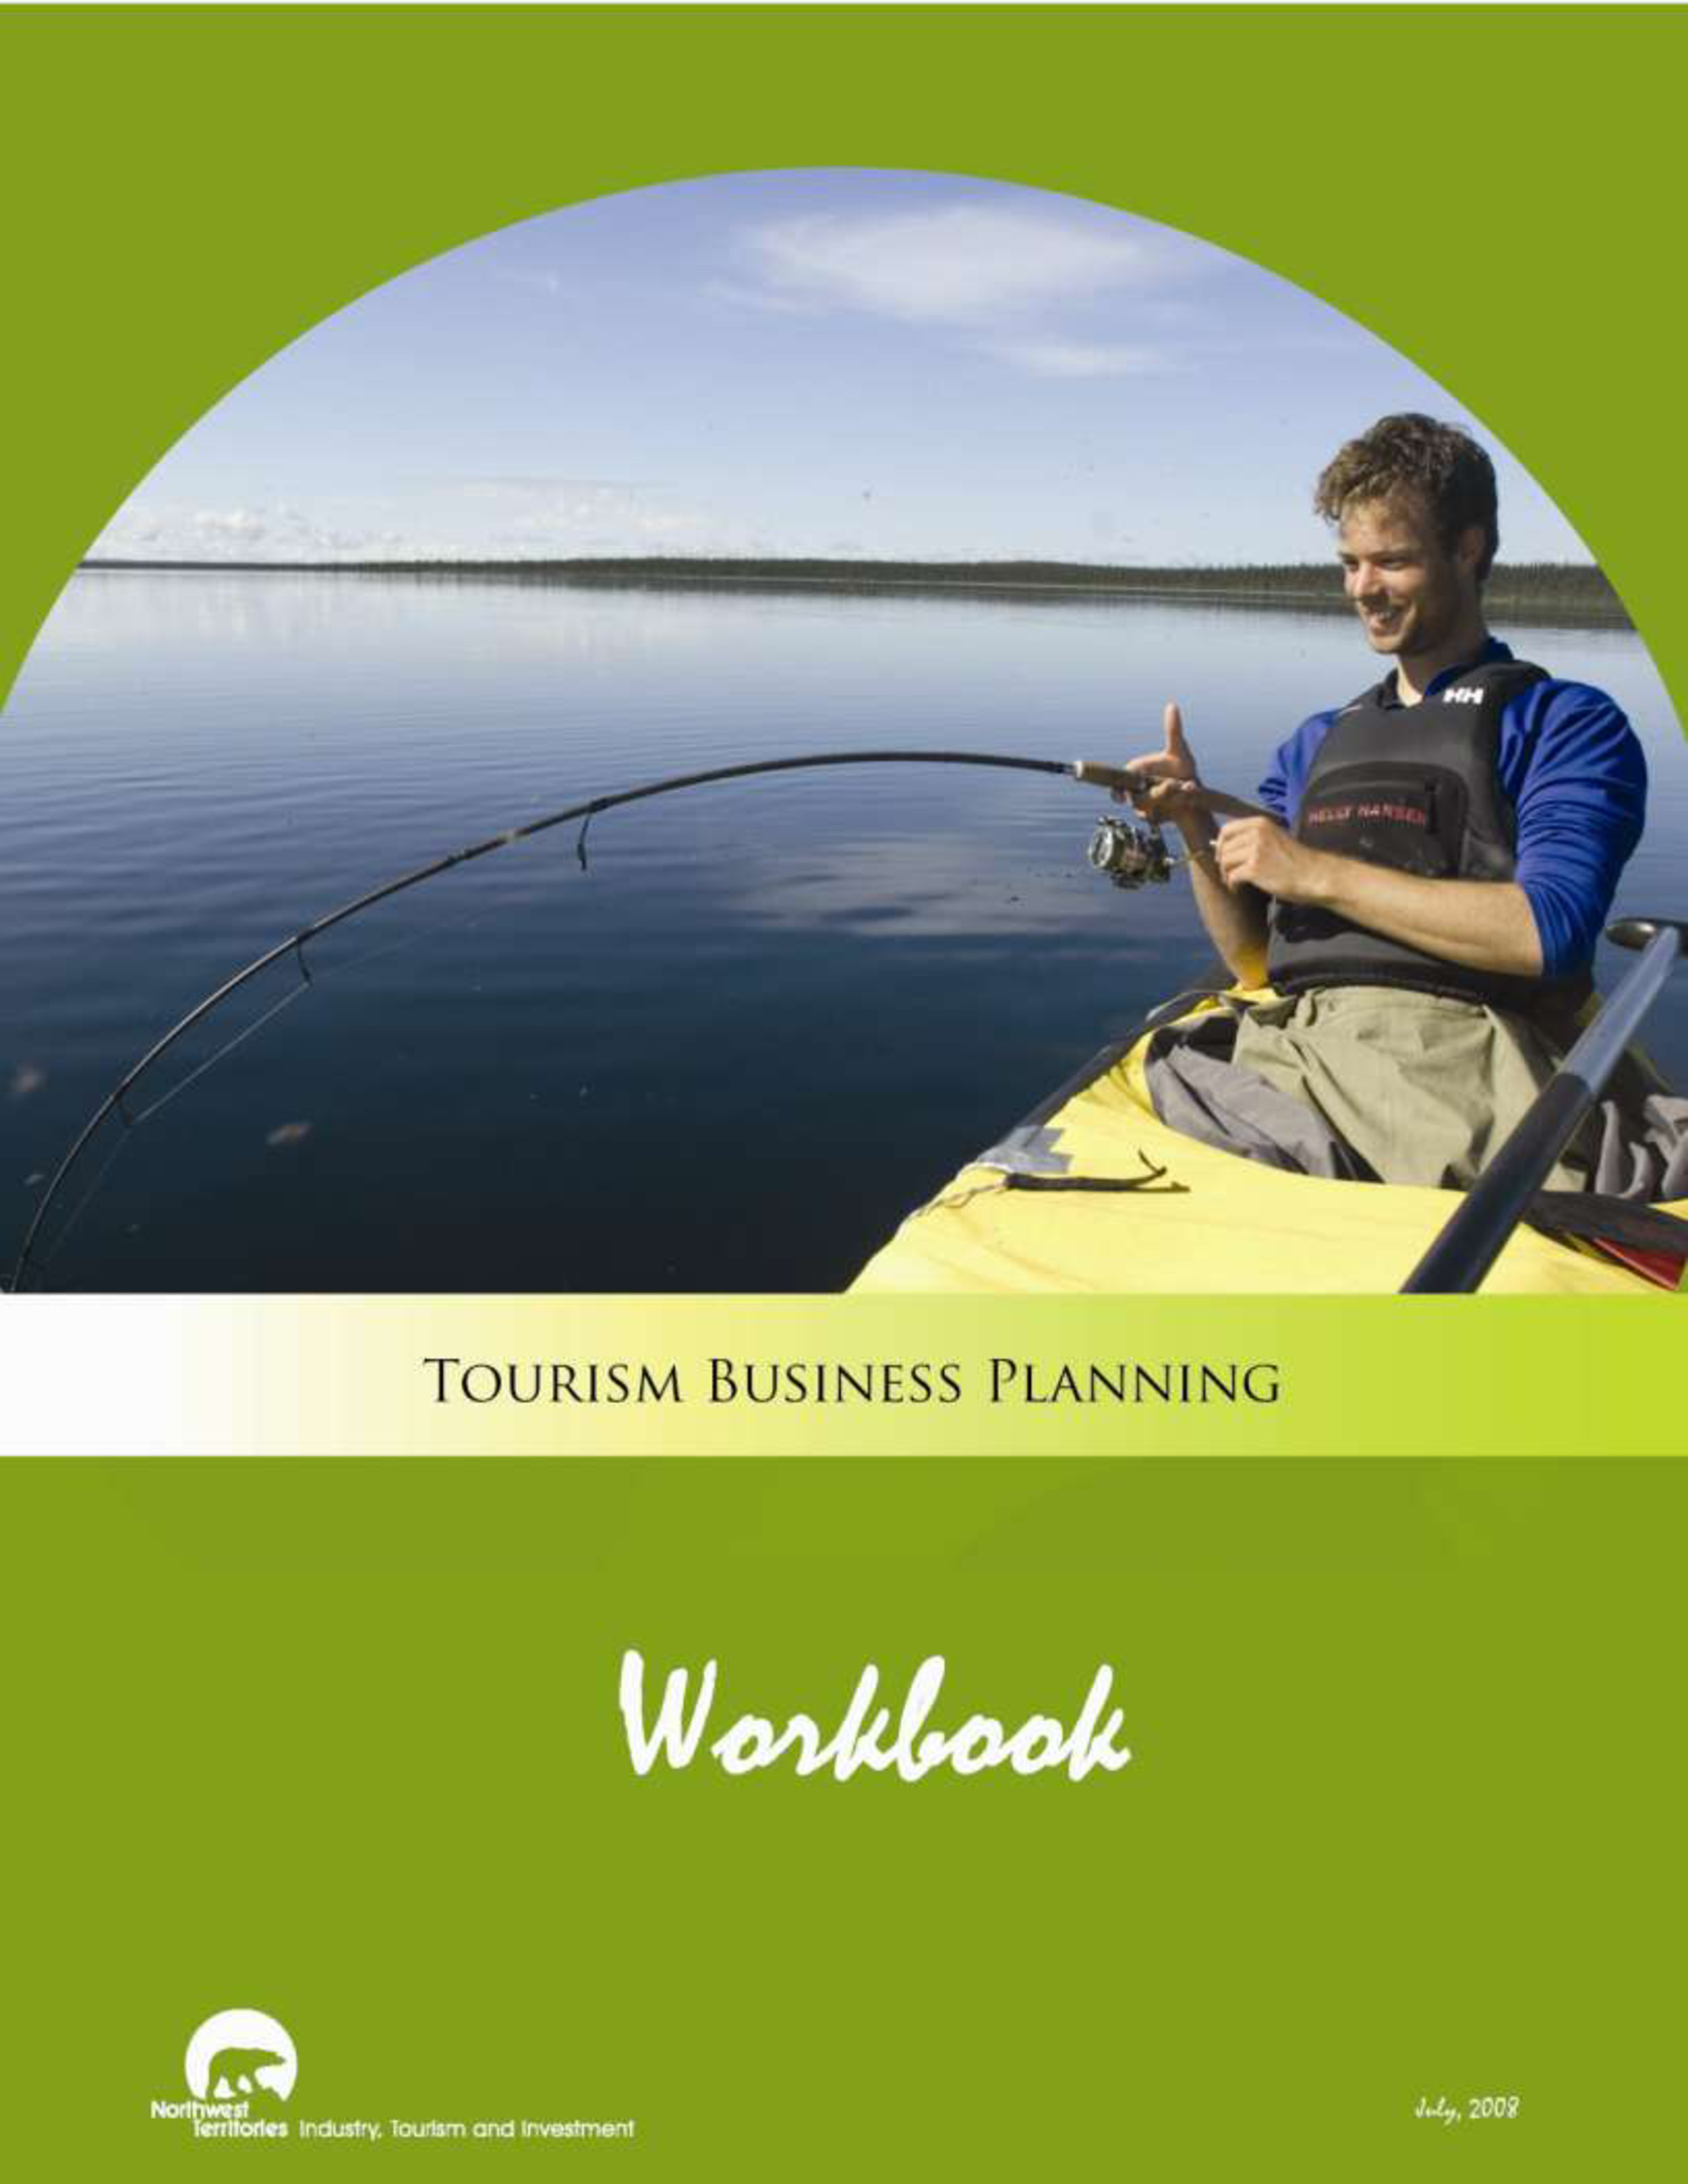 Tourism Business Planning main image